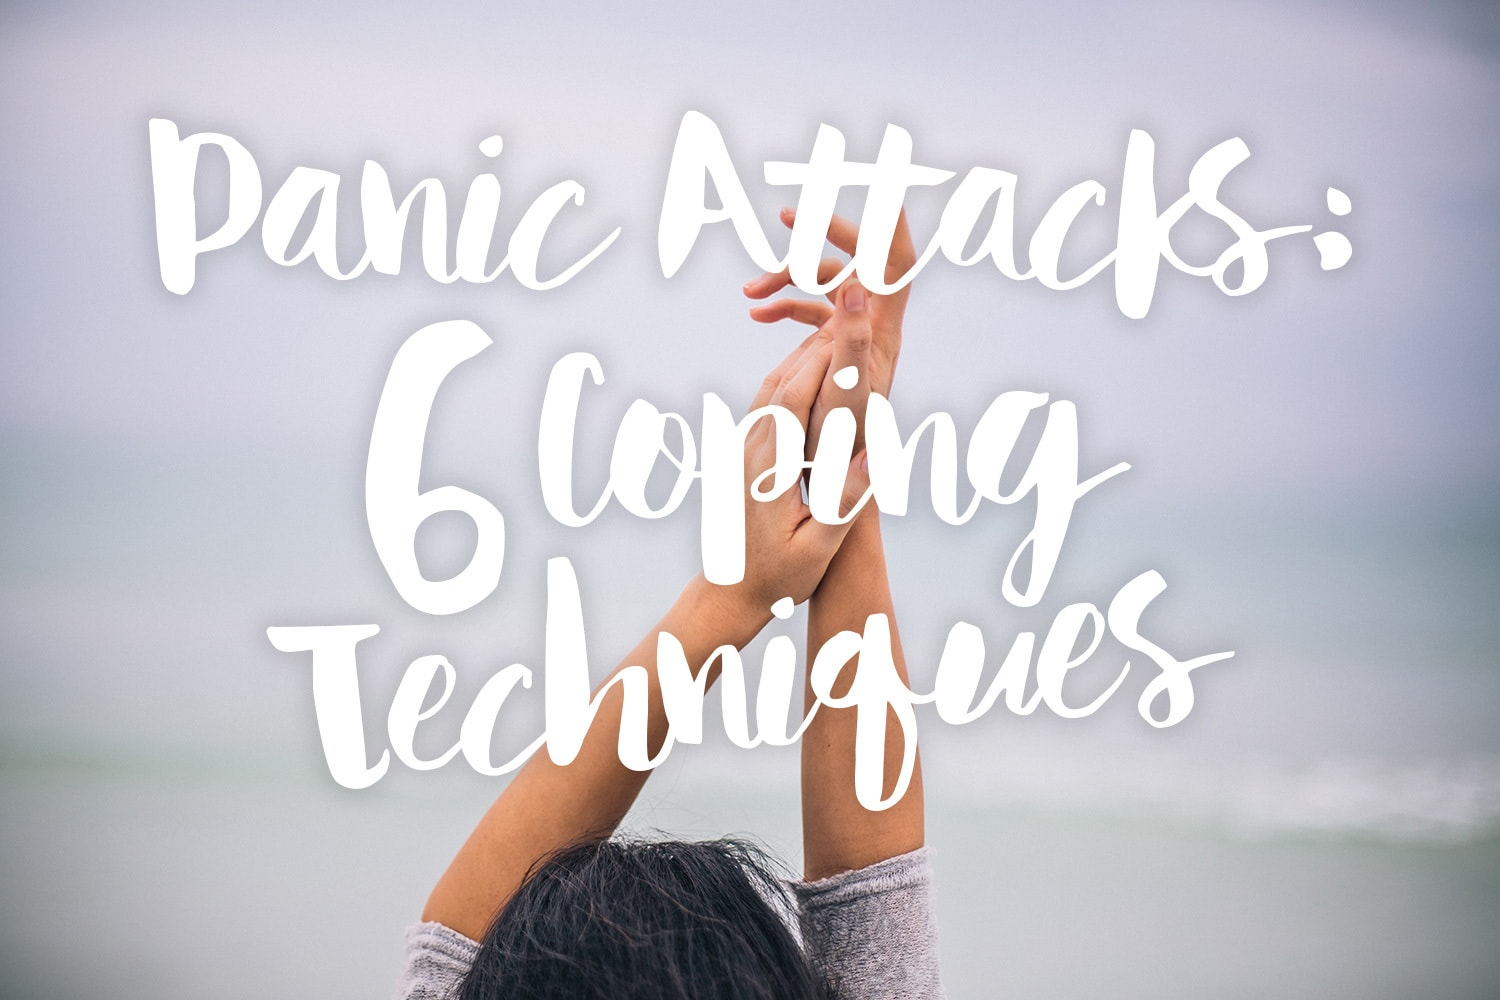 panic-attacks-6-coping-techniques-text